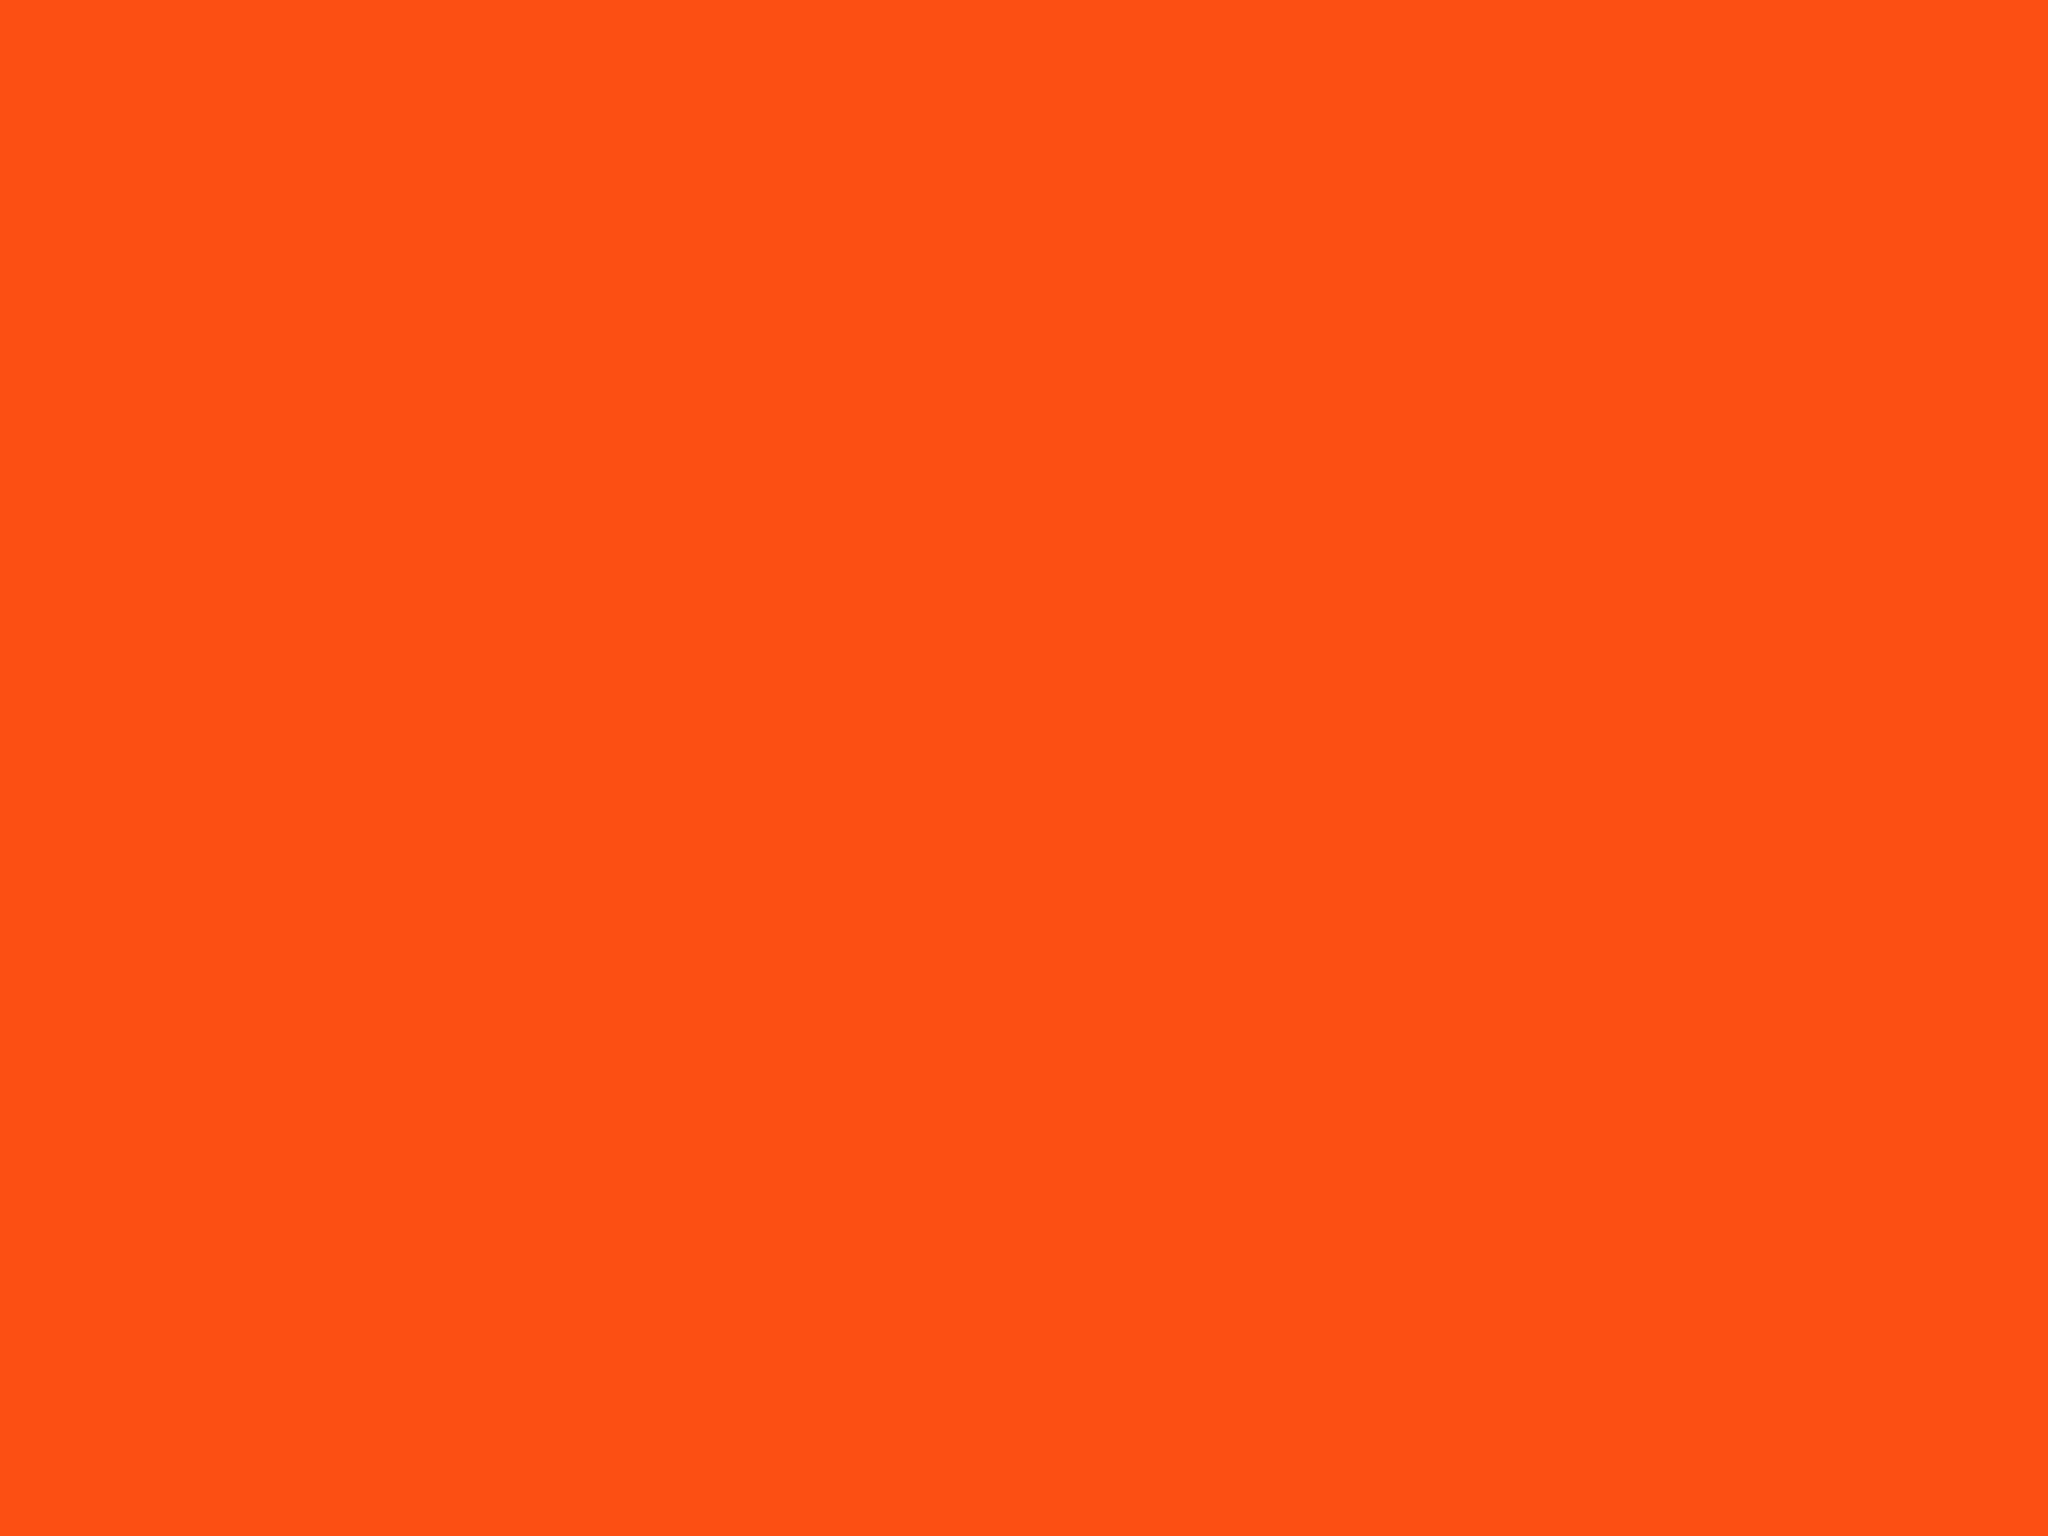 2048x1536 Orioles Orange Solid Color Background